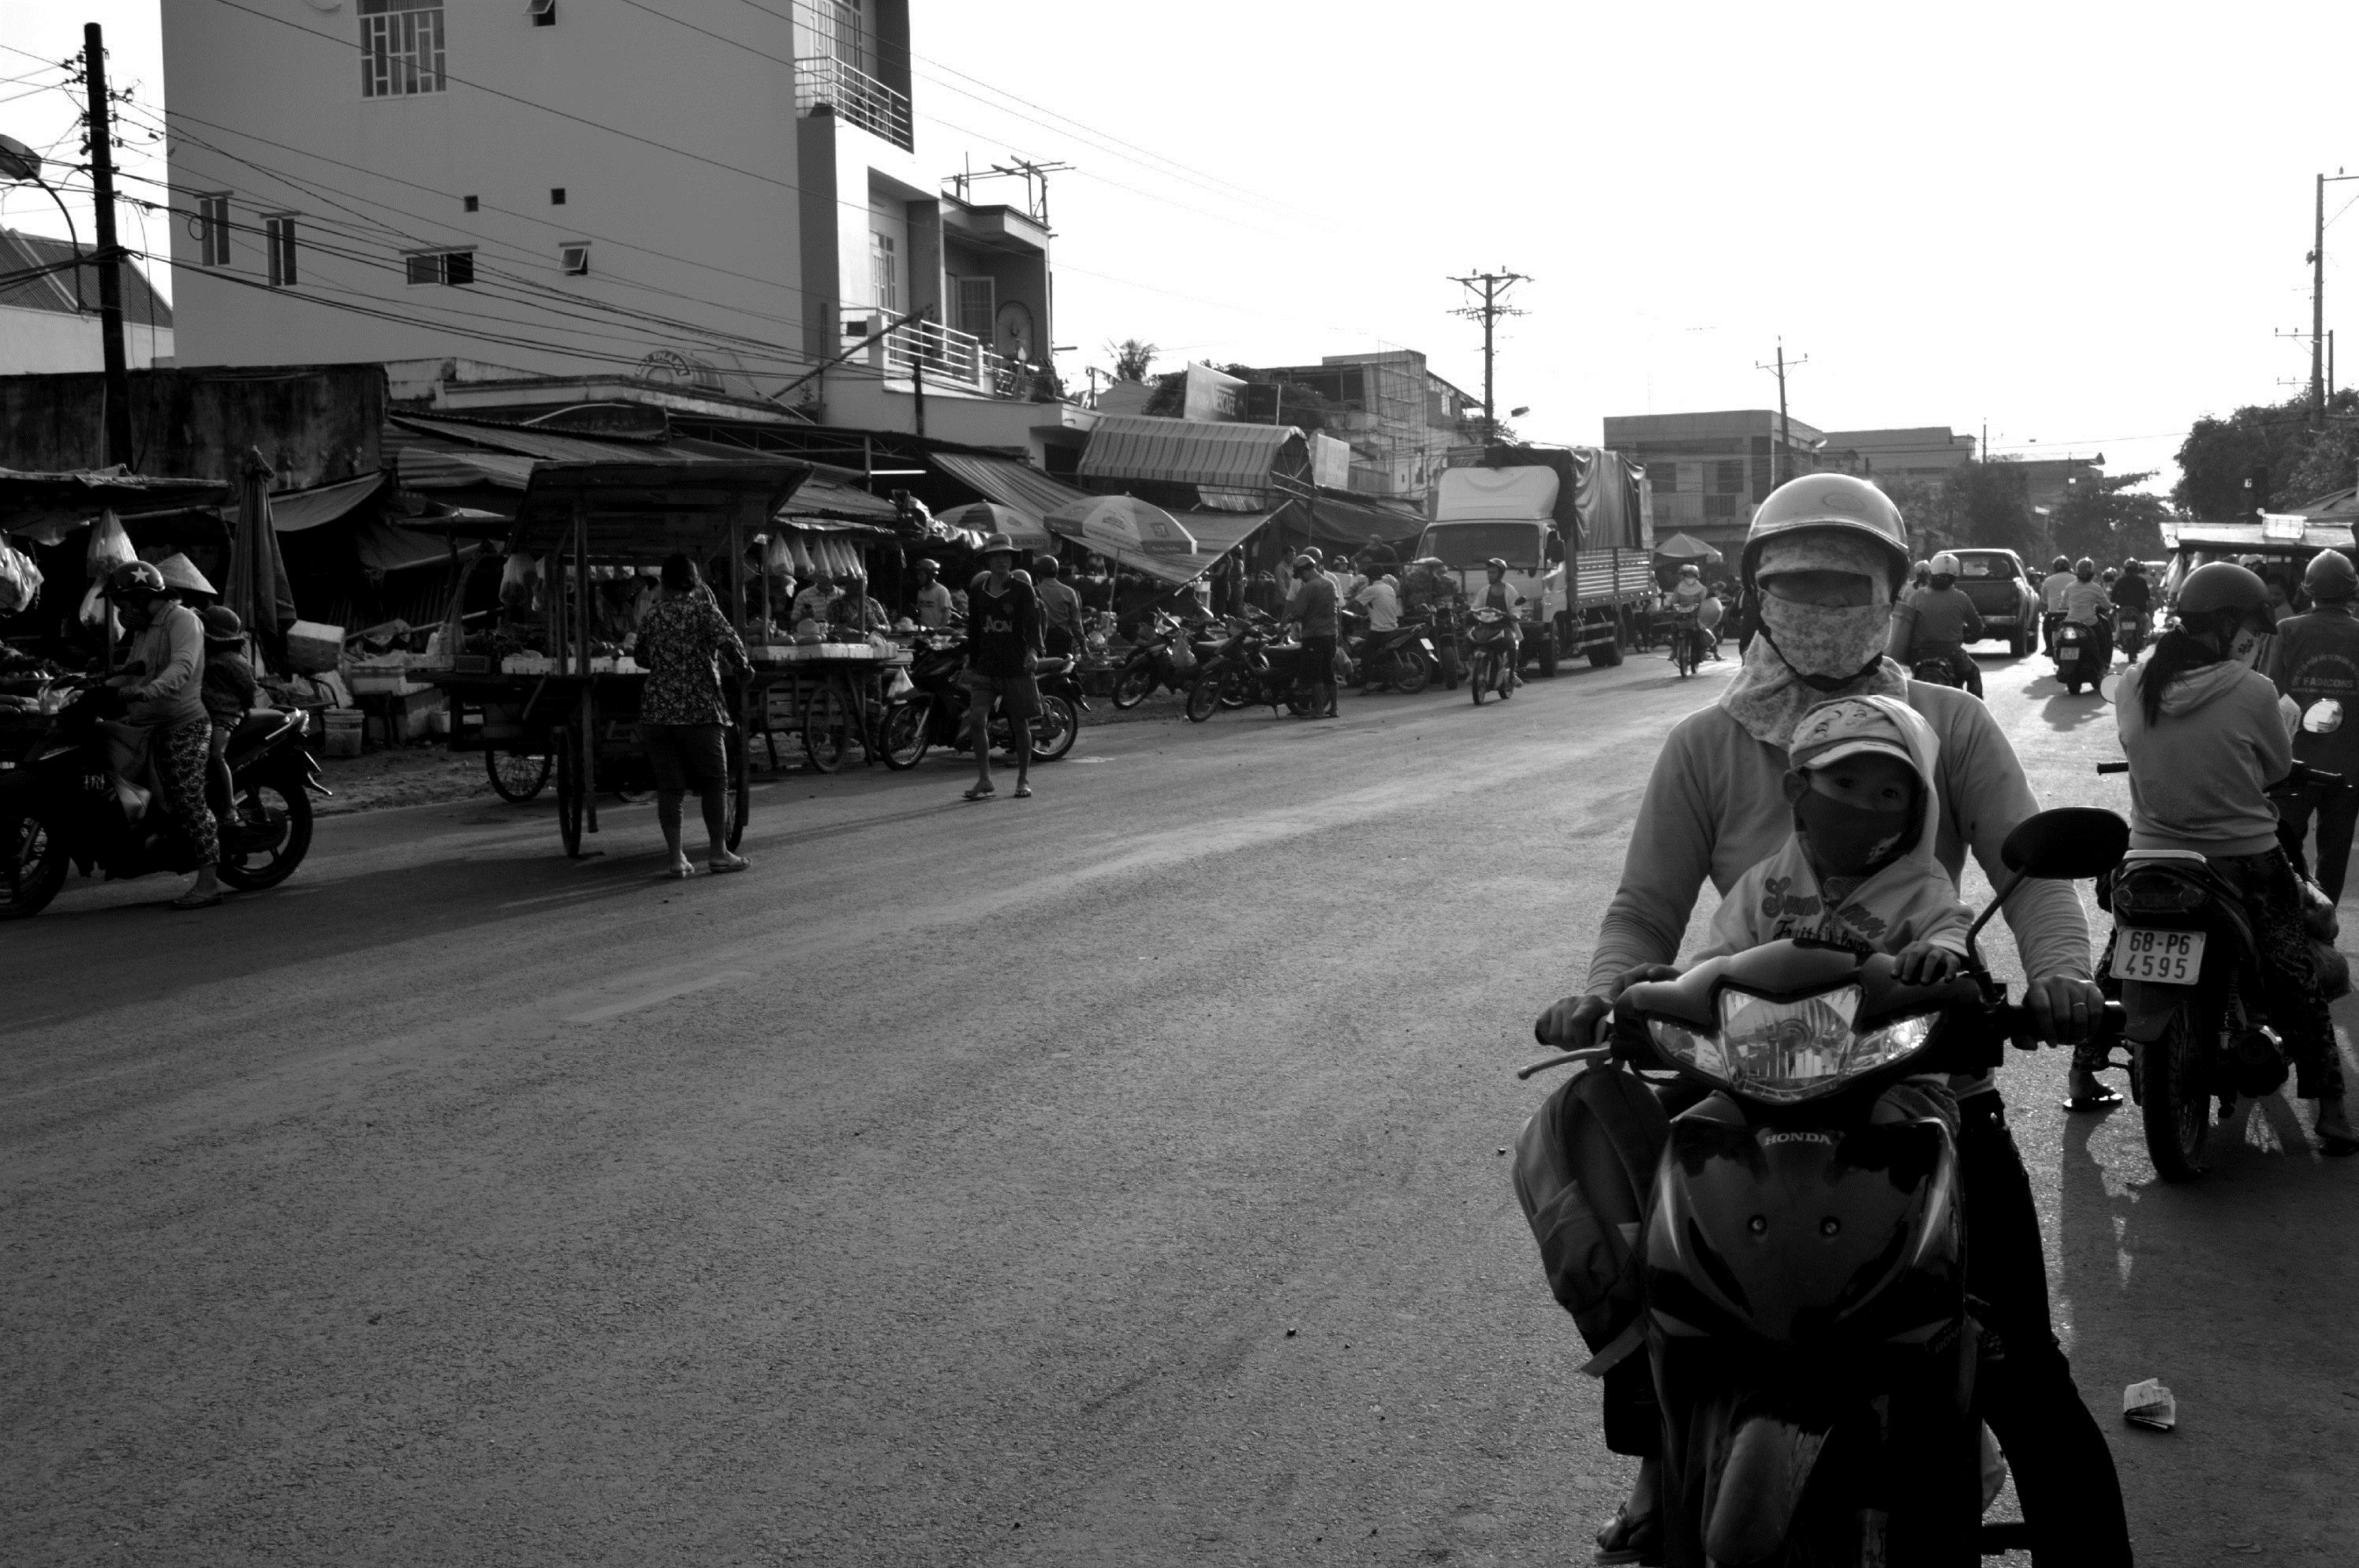 Travel to Phu Quoc by motorcycle